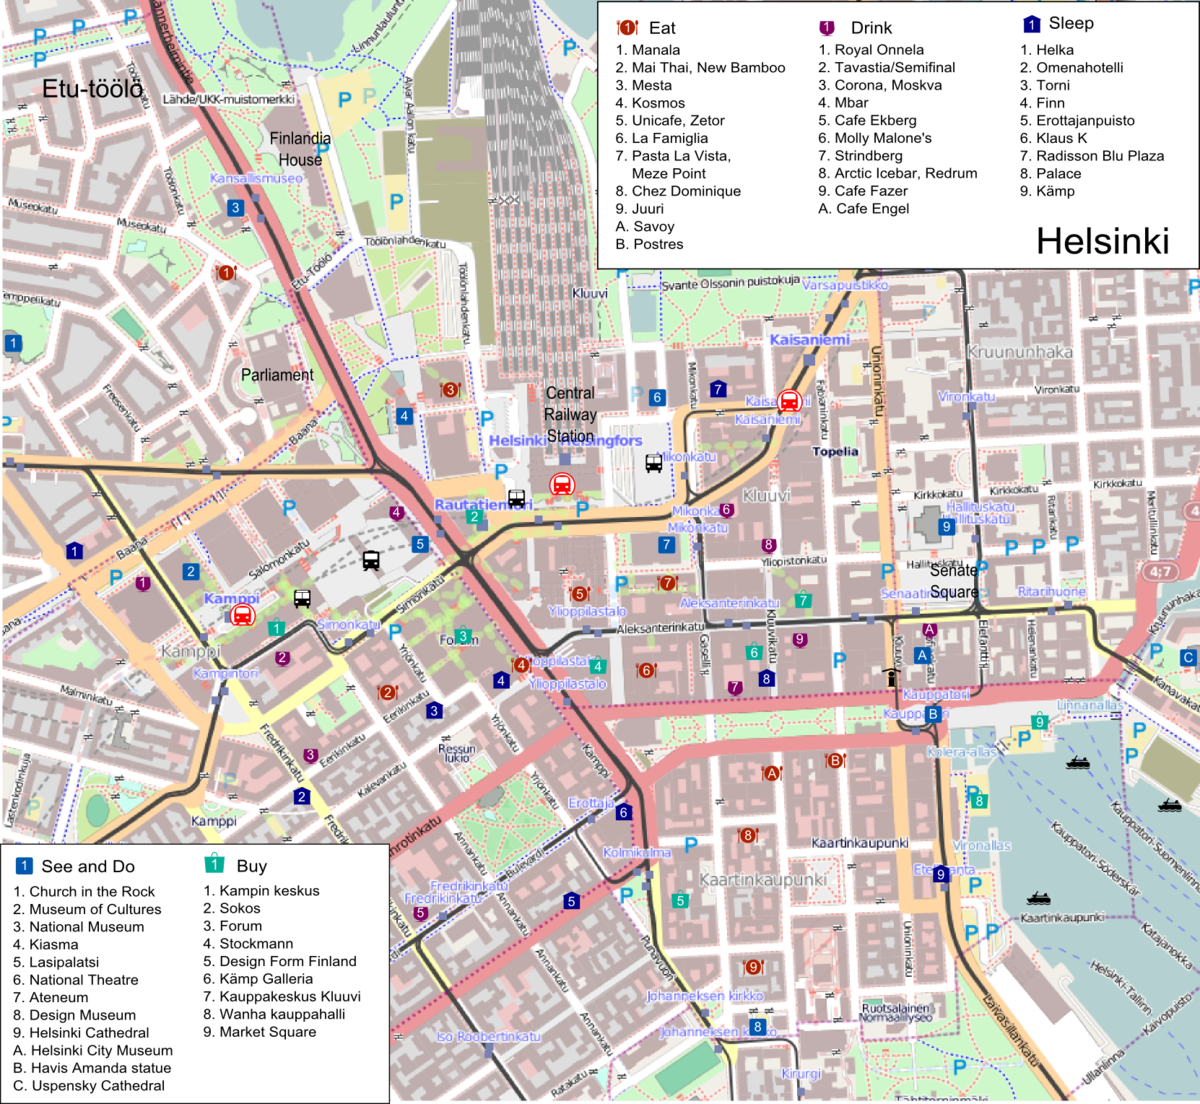 Helsinki itineraries Travel guide at Wikivoyage